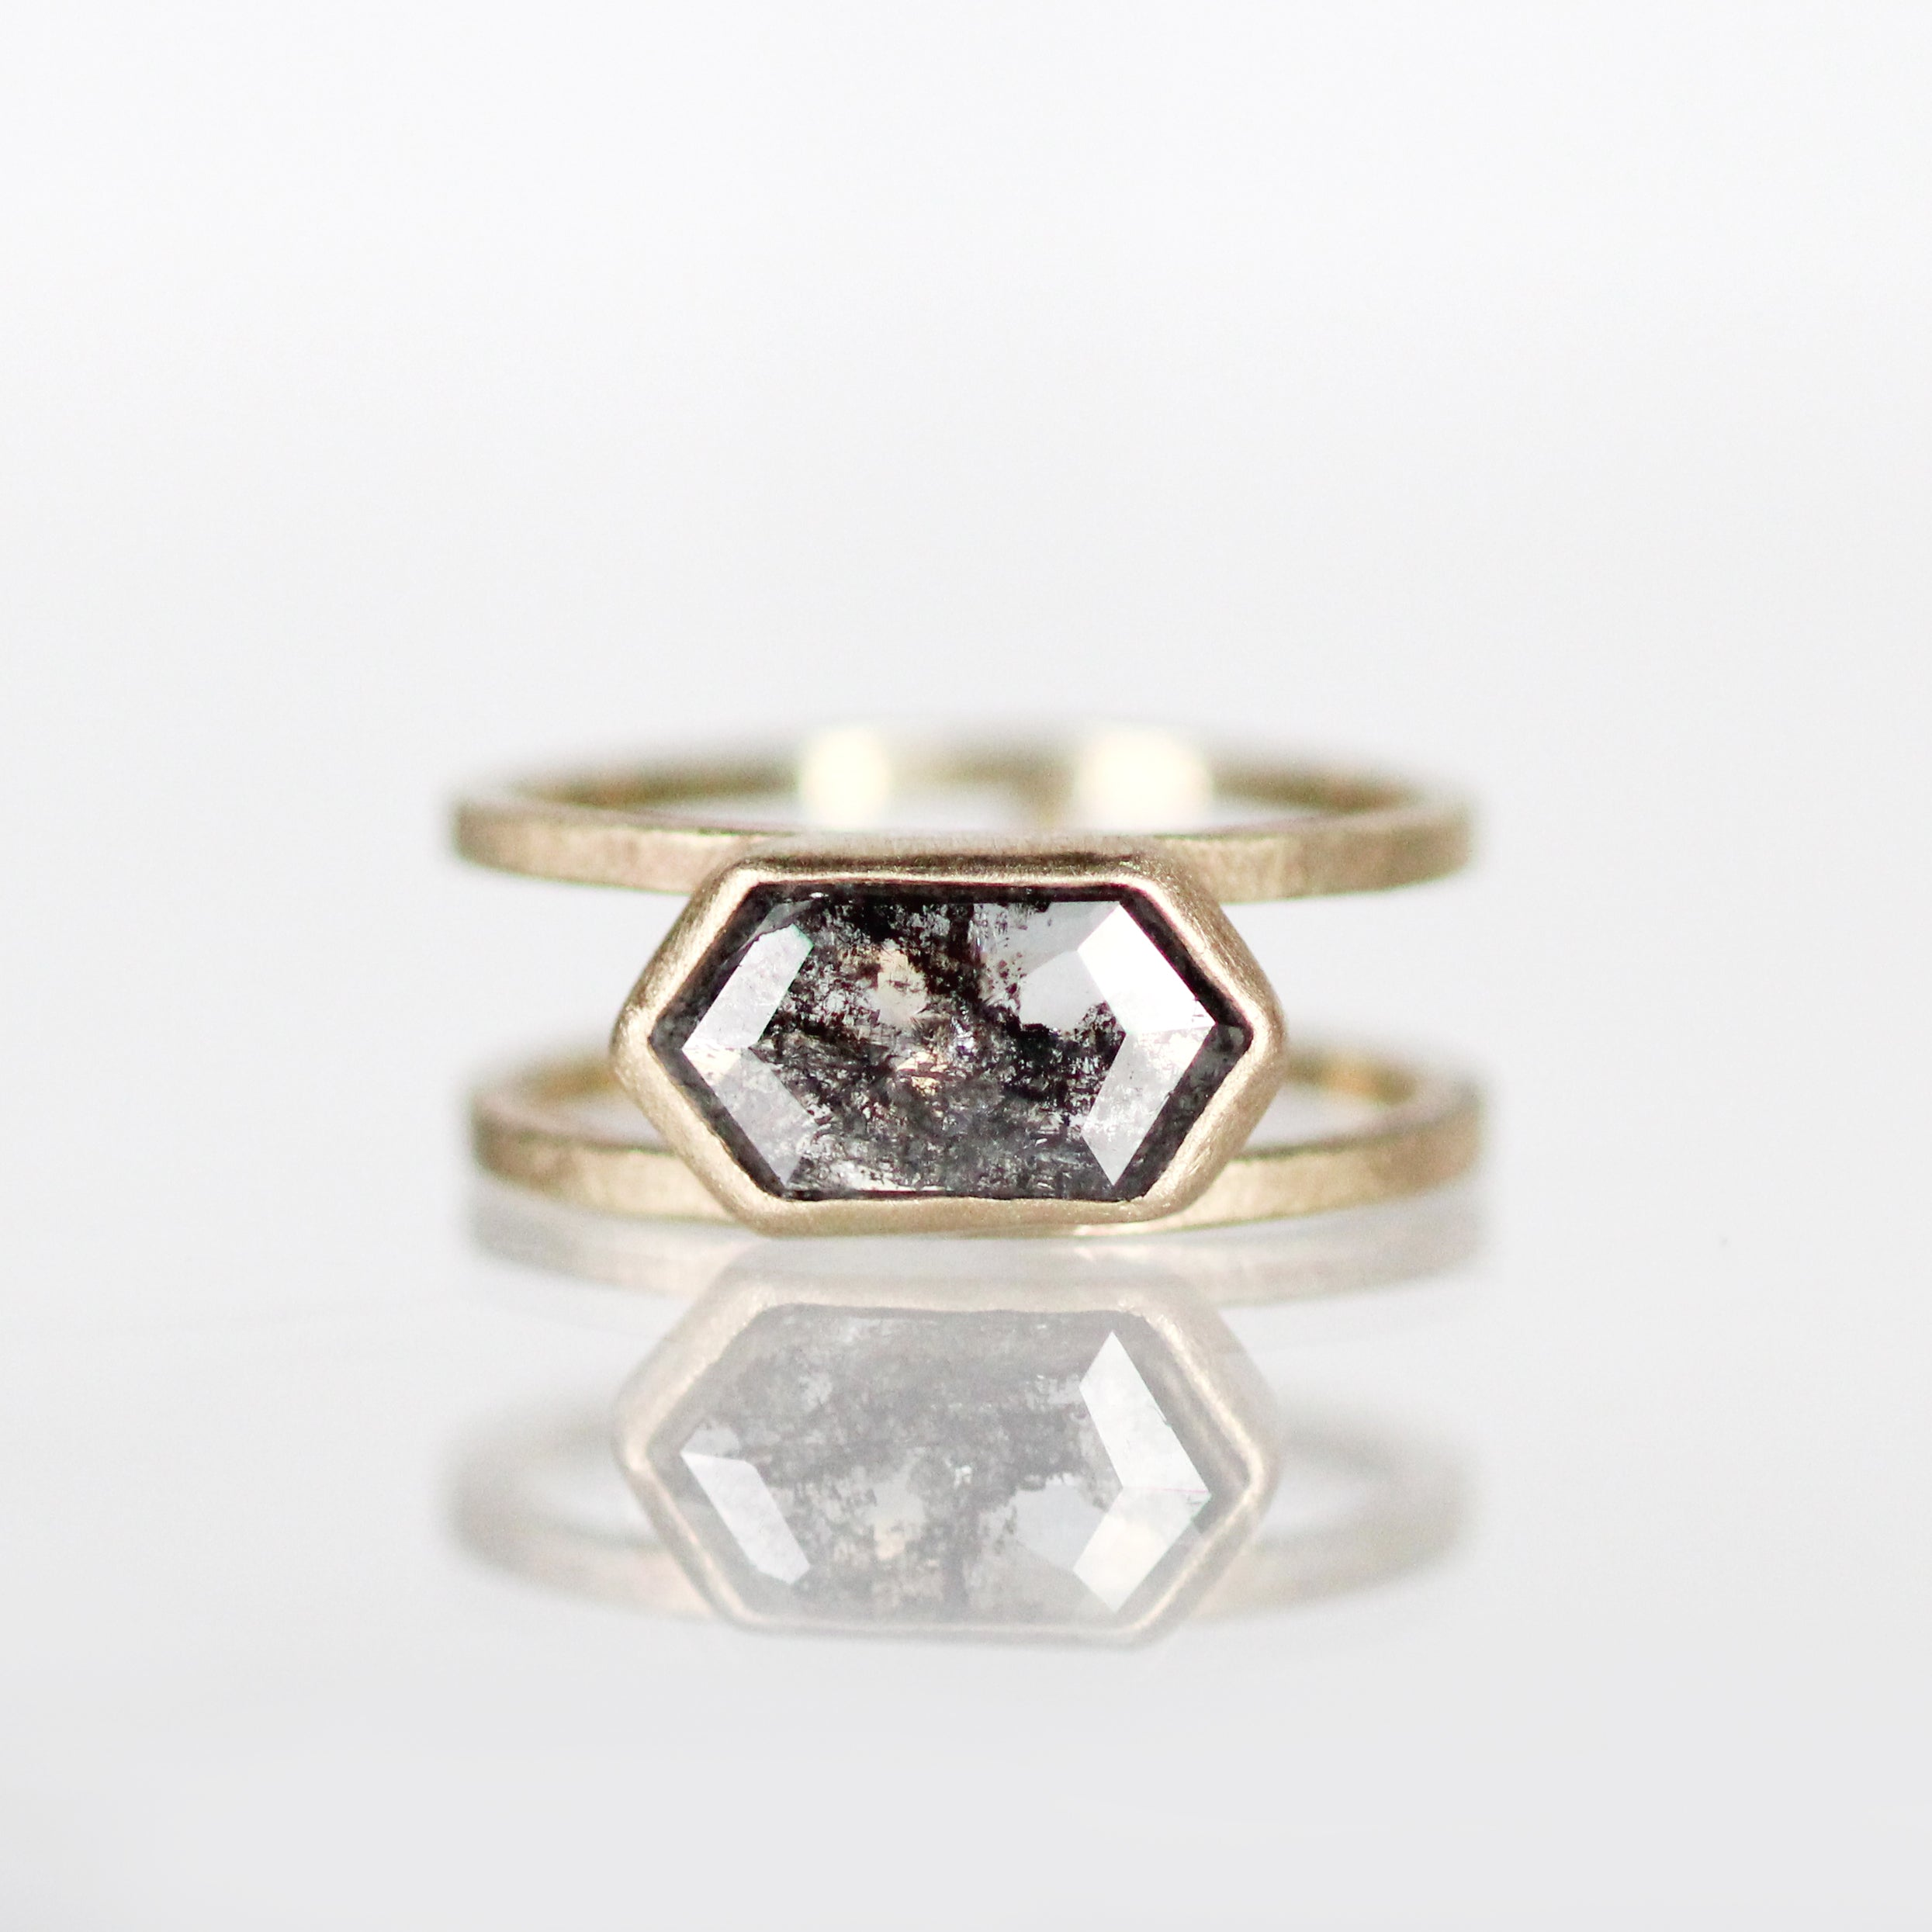 Mae setting - Midwinter Co. Alternative Bridal Rings and Modern Fine Jewelry